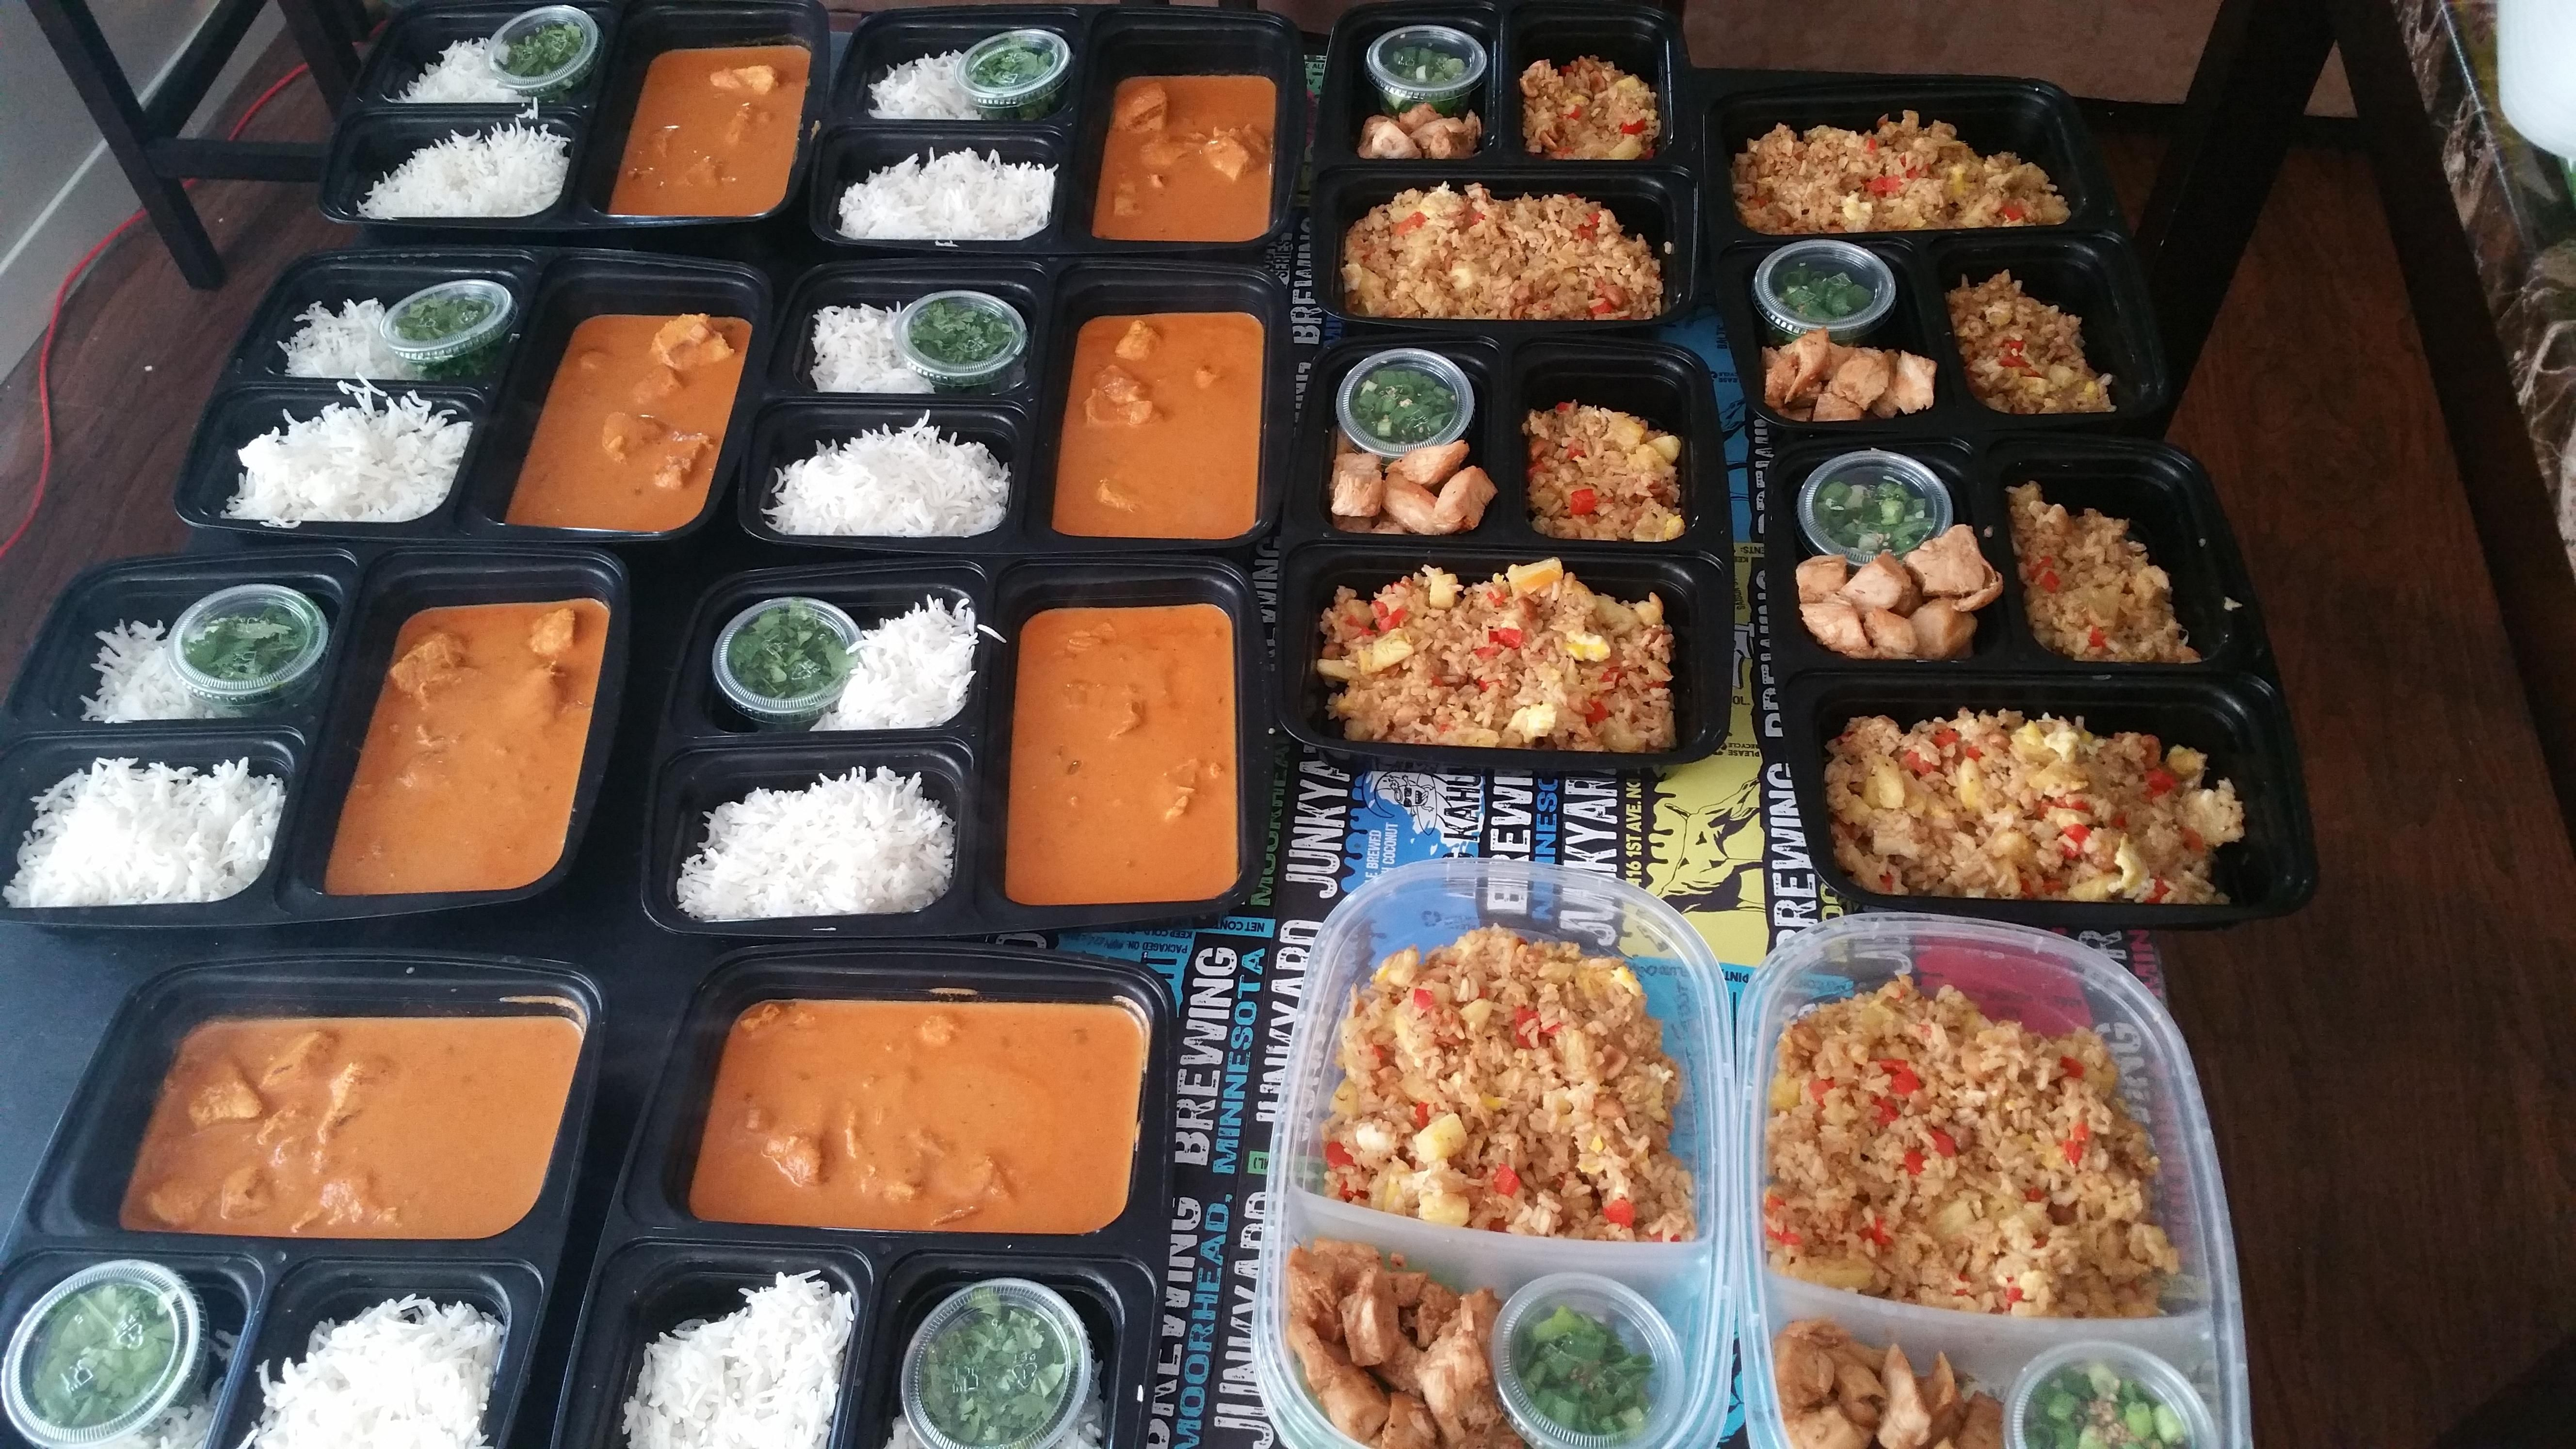 Not your average meal prep! Chicken fried rice bowls and Tikka Masala! #mealprepping #OneSimpleChange #mealprep #healthy #mealplanning #healthyliving #food #weightloss #sunday